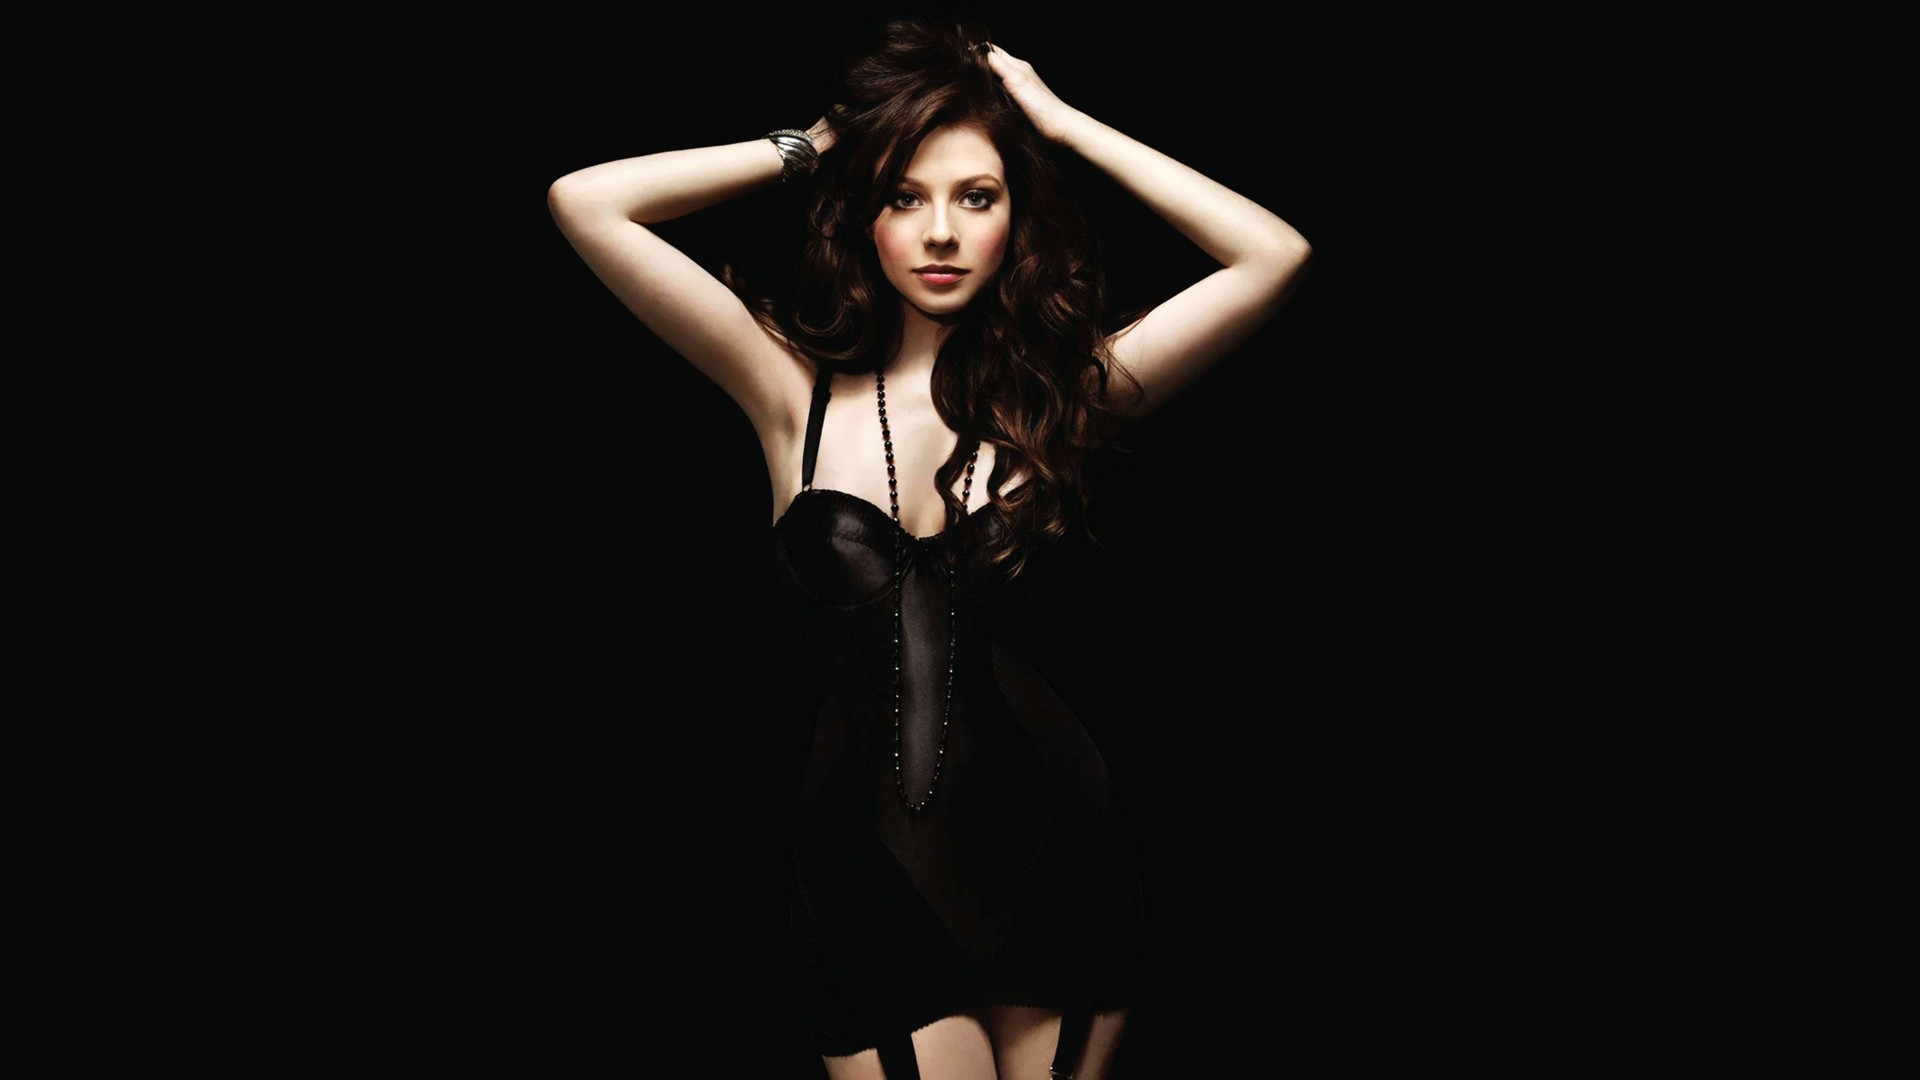 wwwmaximcomgirls of maximmichelle trachtenberg Computer Wallpapers 1920x1080